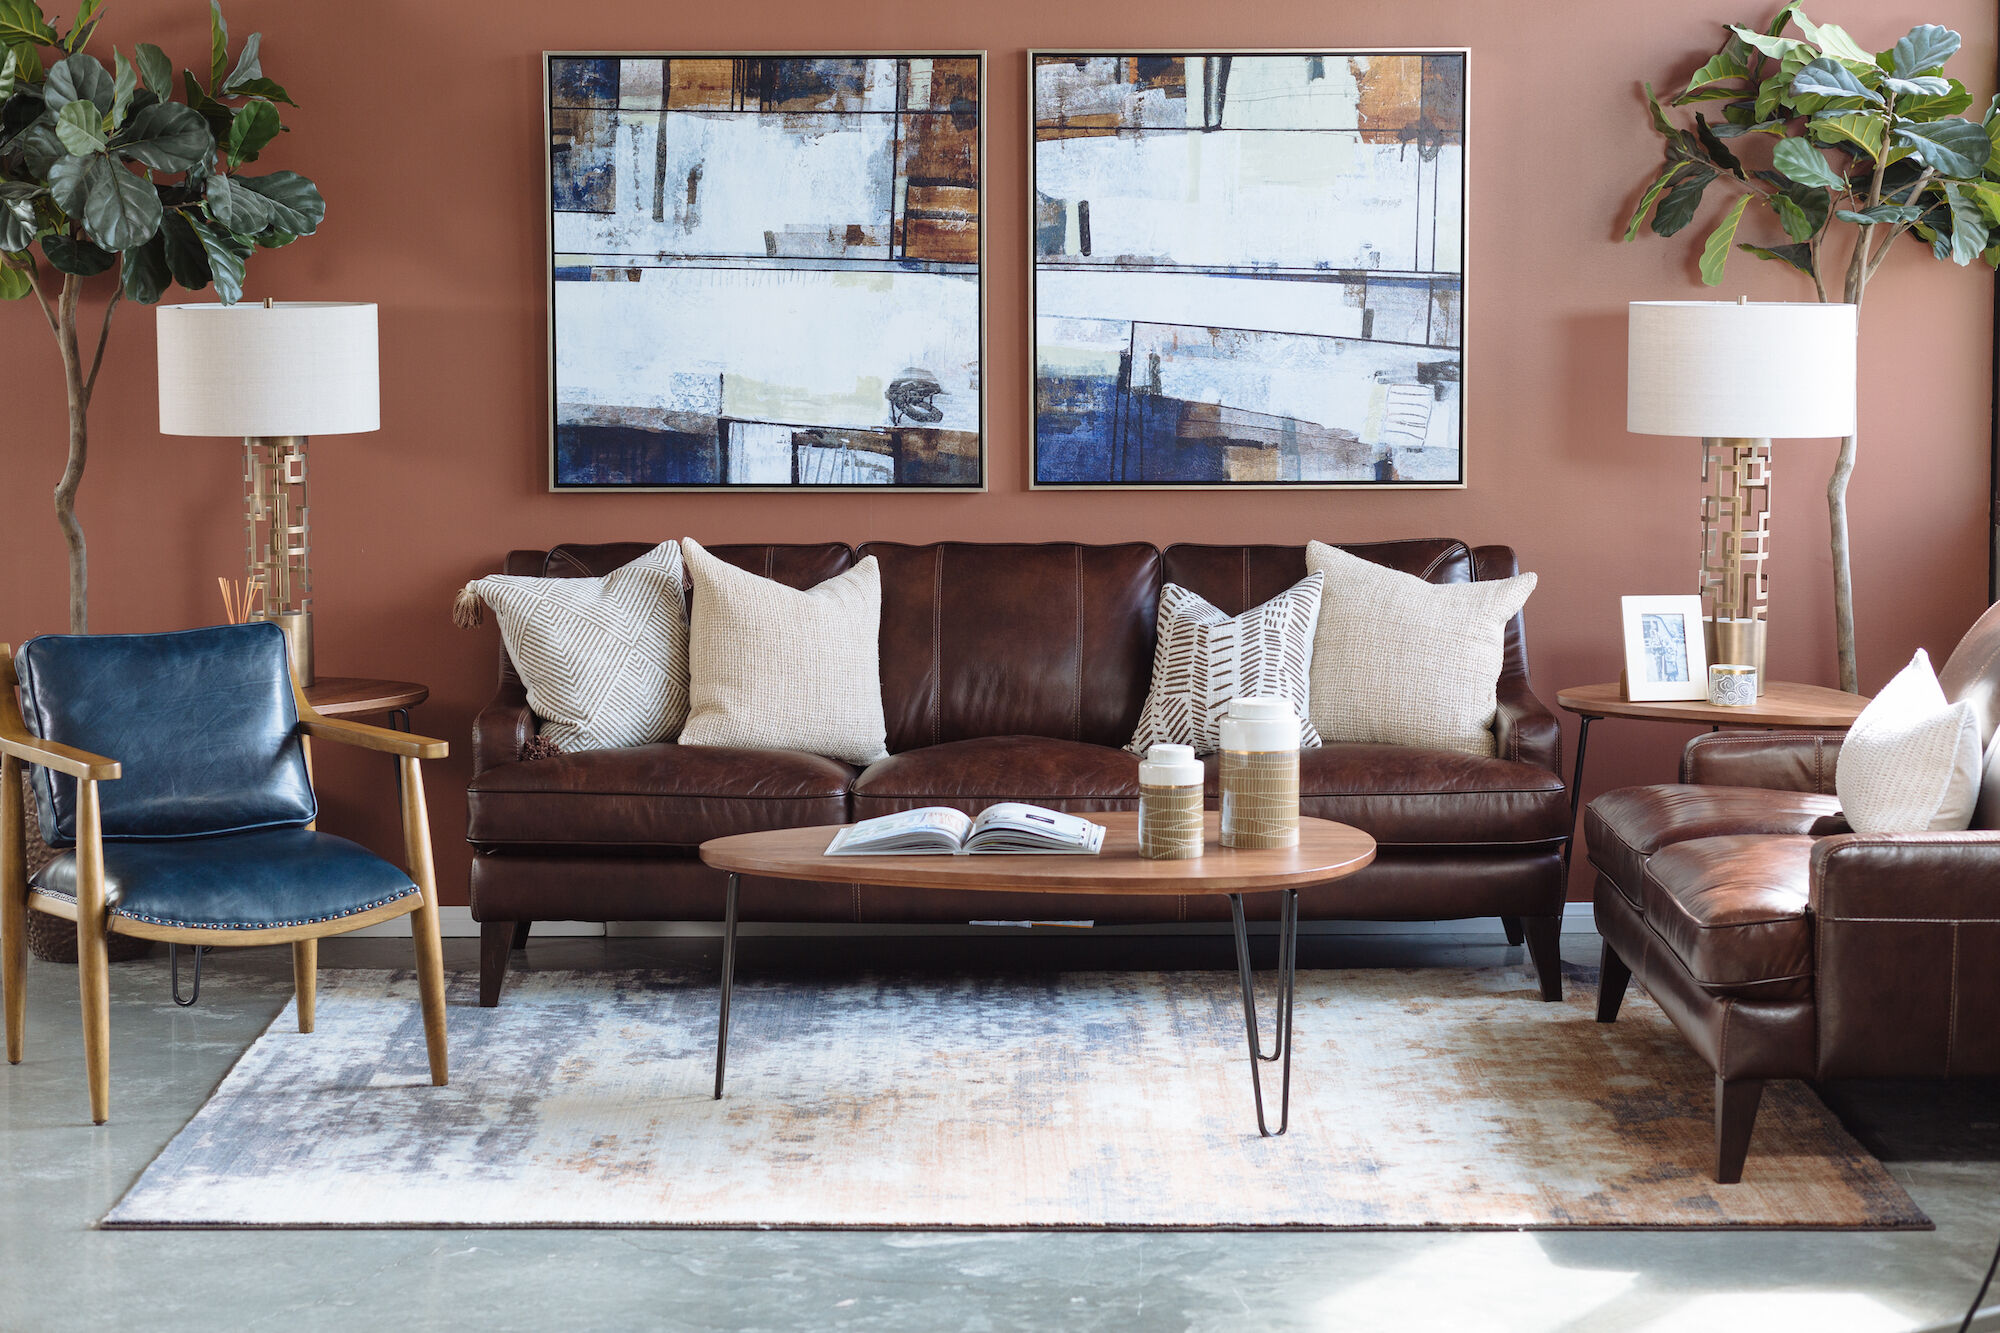 photos of living rooms with leather sofas light grey sofa room decor furniture stores mathis brothers casual in brown